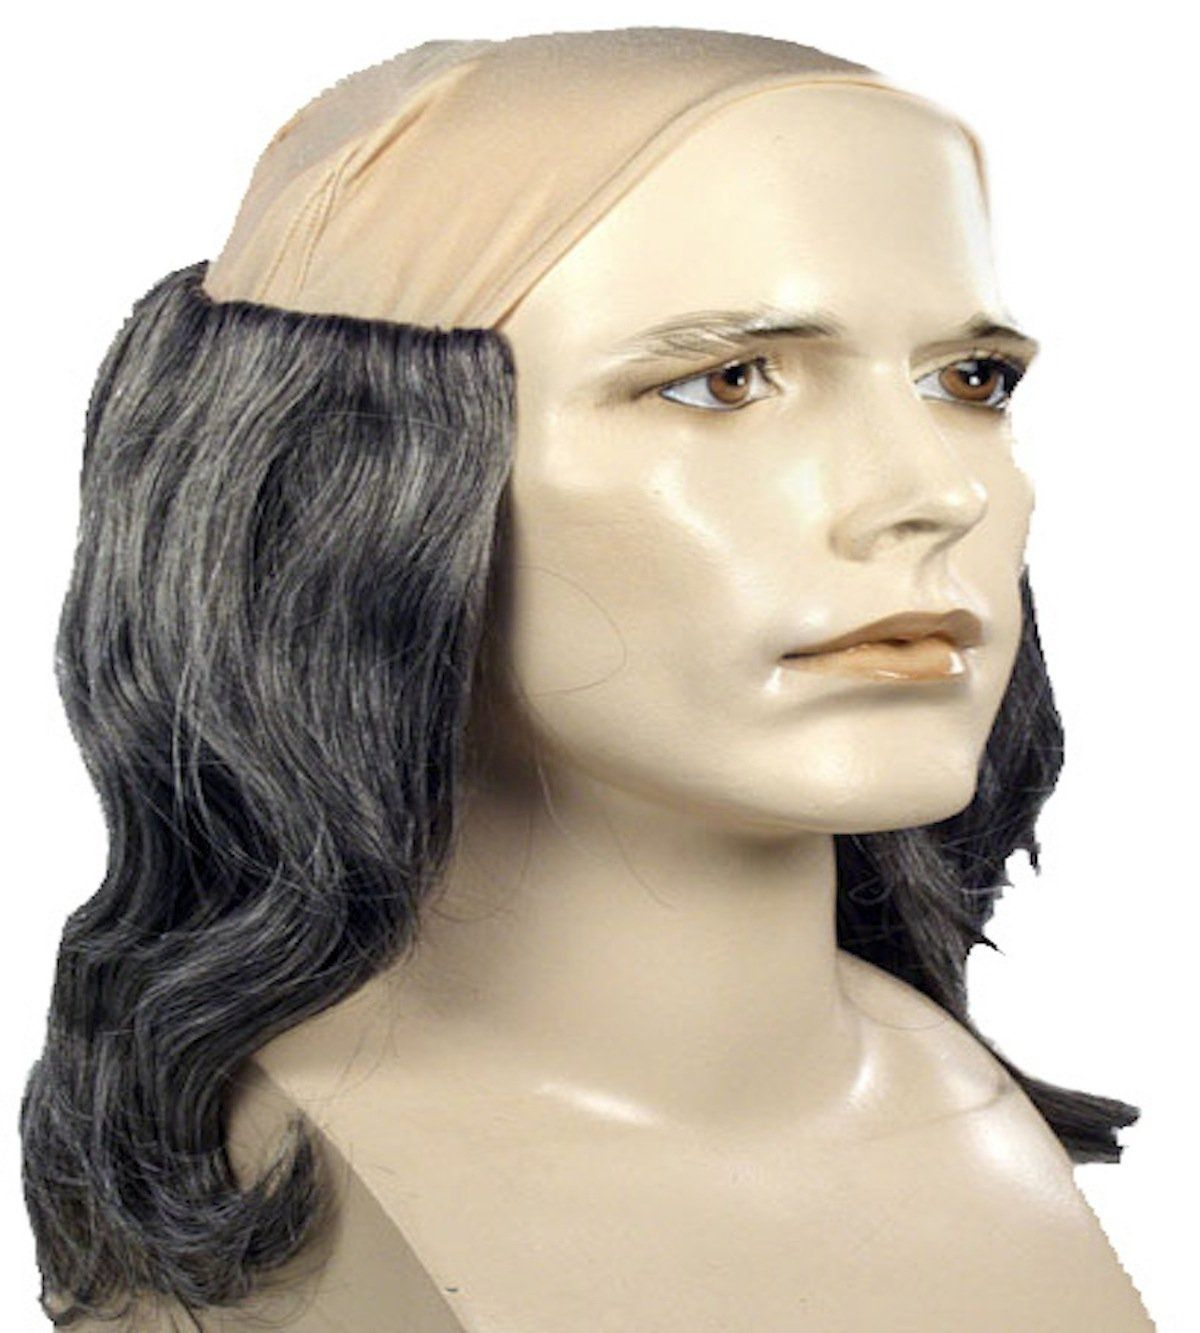 Uhhhh...no words for their choice of bust for this Shakespeare wig.